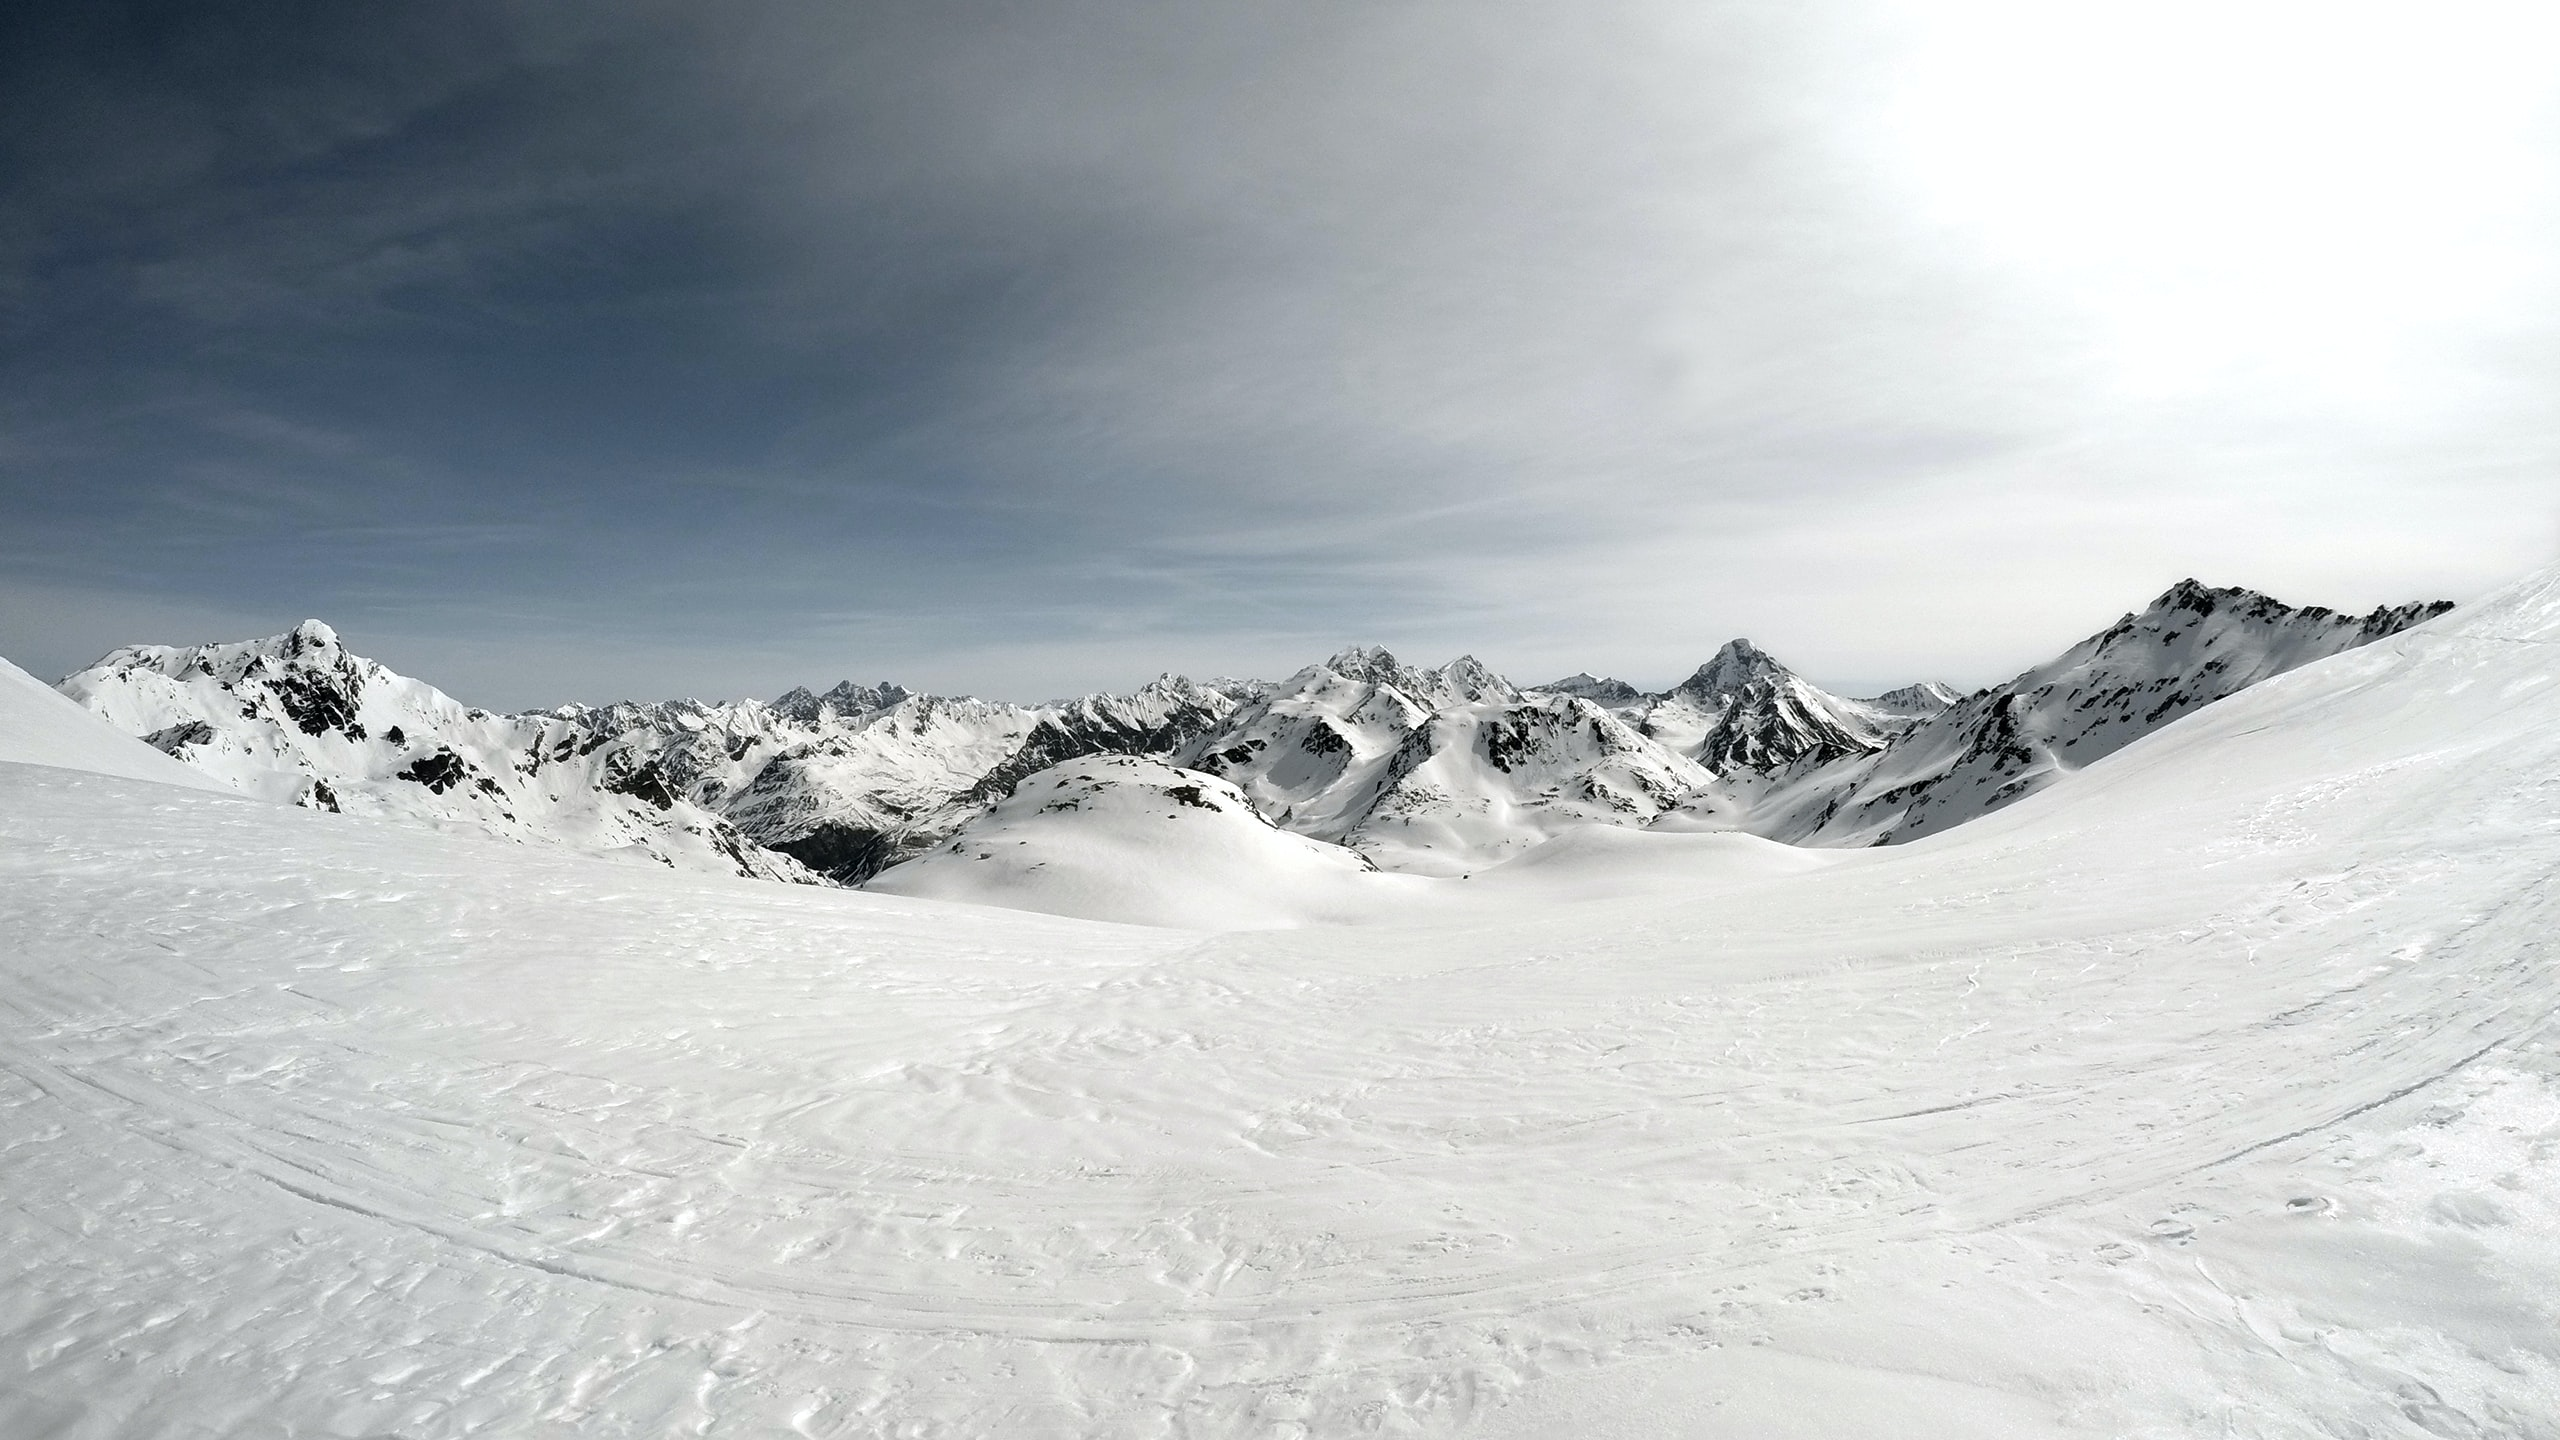 Fish eye snowy landscape of land and mountains on a sunny day at Flüela Wisshorn